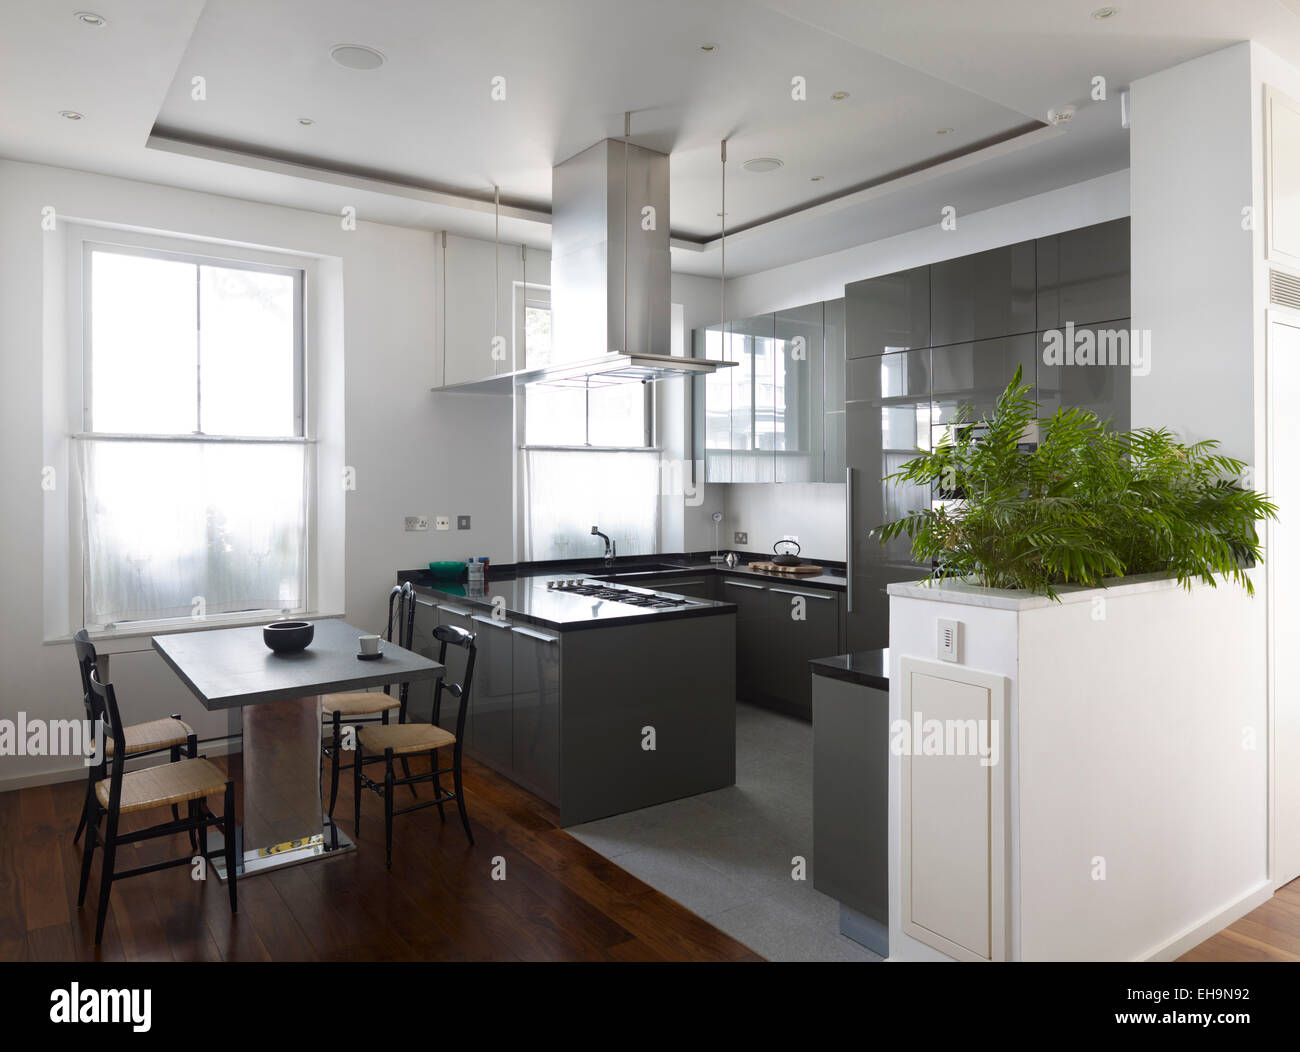 Modern Kitchen Extractor Fans kitchen island large extractor fan stock photos & kitchen island